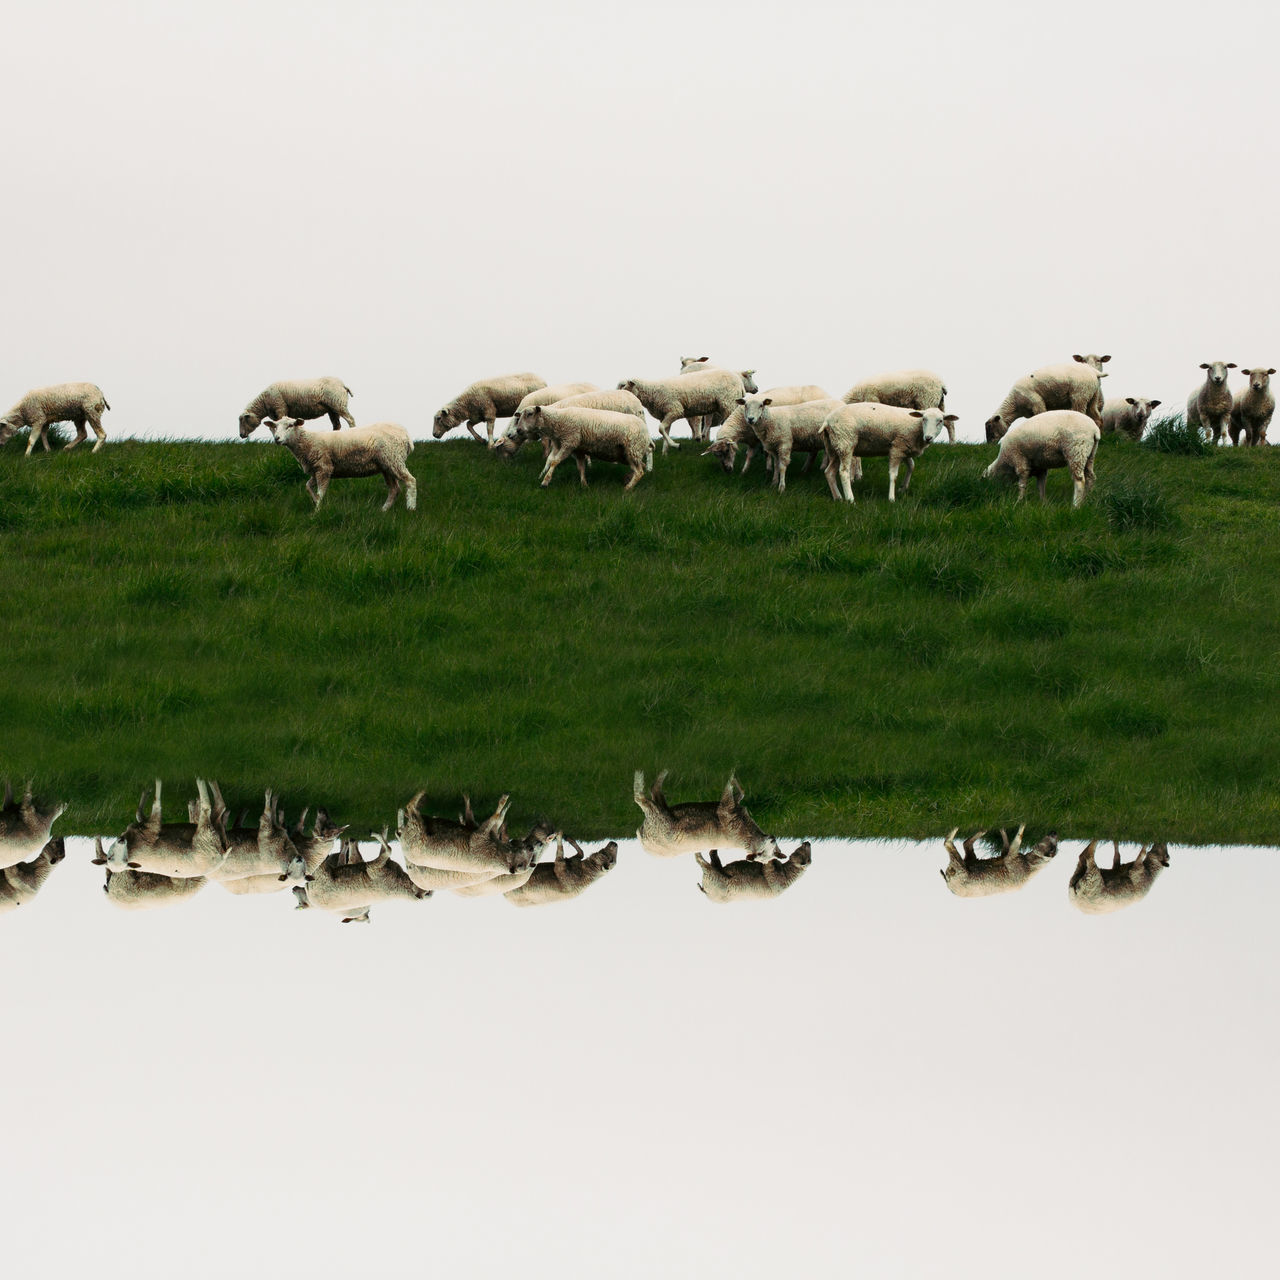 Sheeps Ostfriesland Large Group Of Animals animal wildlife animal outdoors group of animals Animals in the Wild landscape Livestock Nature no people sheep domestic animals animal themes day art ArtWork Photomanipulation flipped reflections Wanderlust POTD picoftheday photooftheday sky BYOPaper! The Great Outdoors - 2017 EyeEm Awards